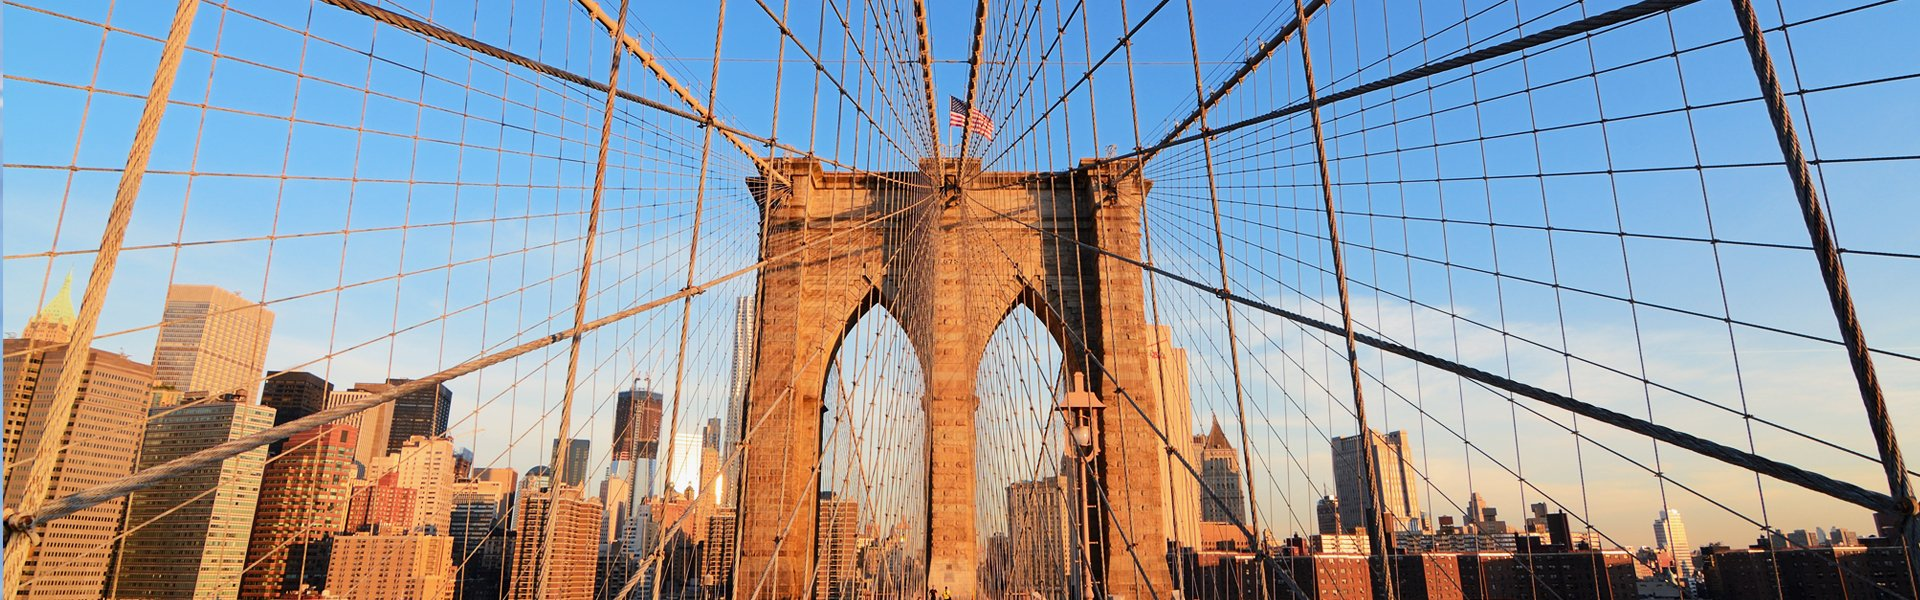 Brooklyn bridge in New York, Amerika